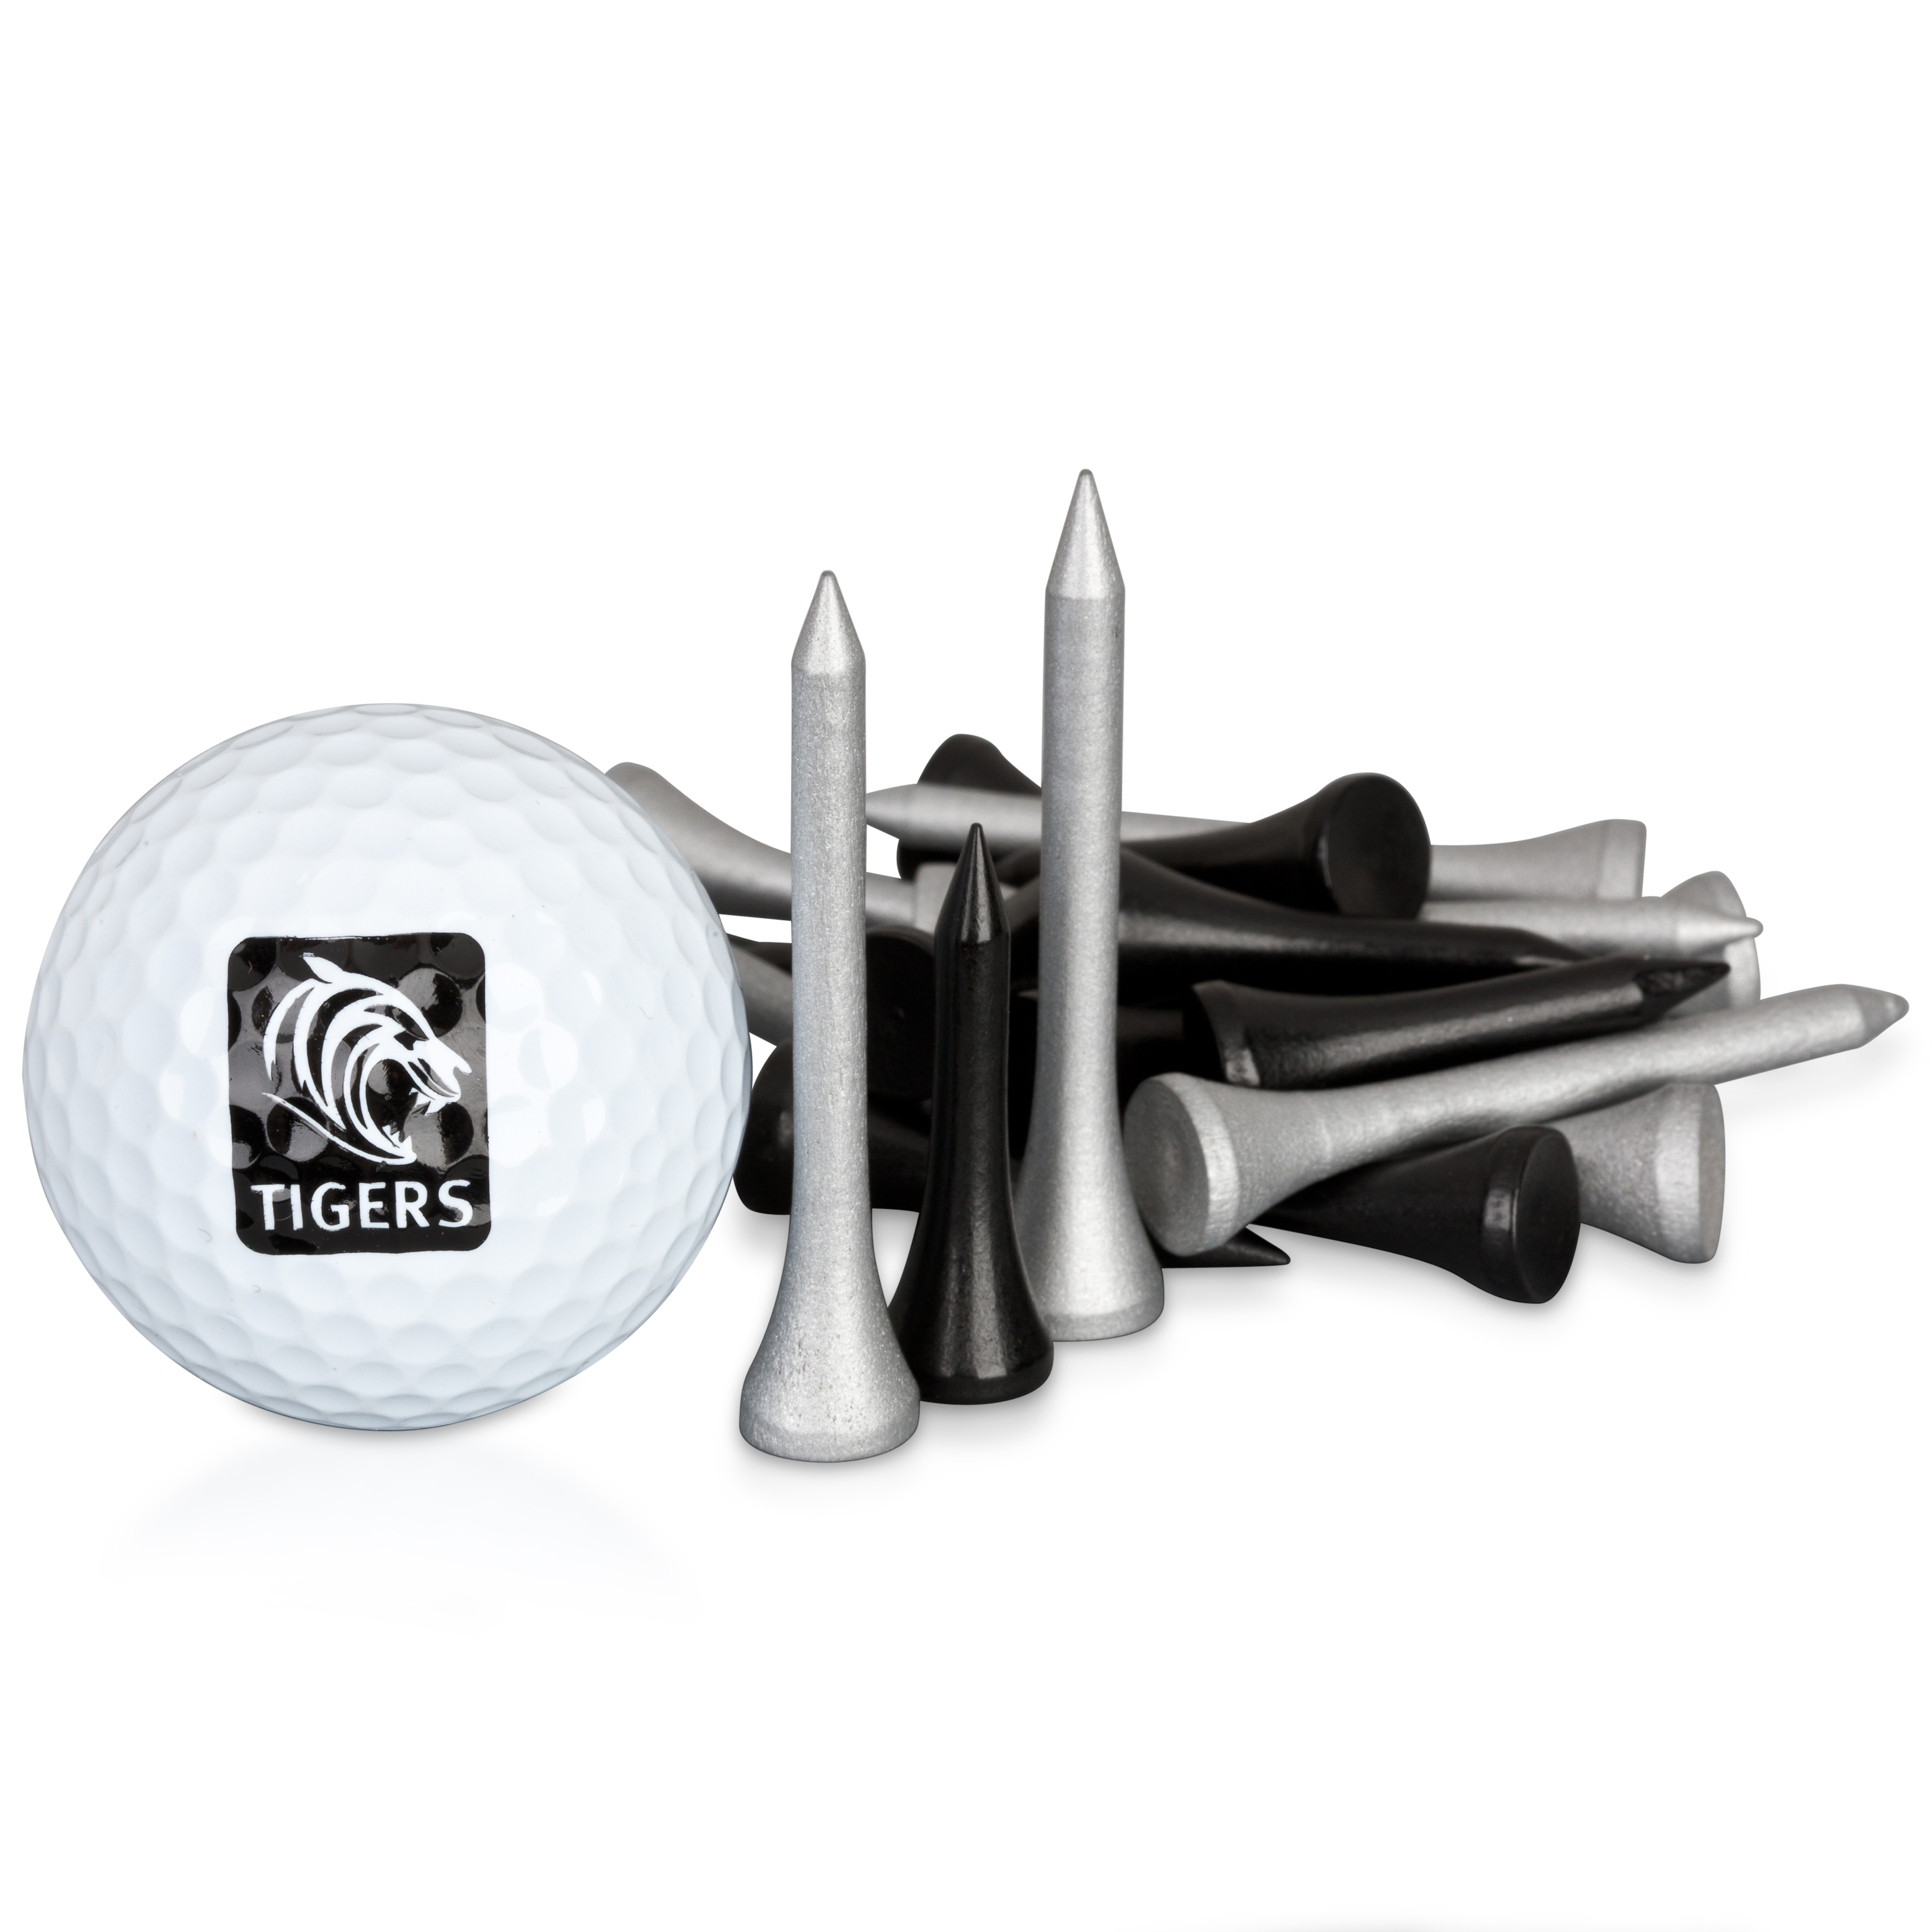 Leicester Tigers Executive Golf Gift Ball and Tee Set